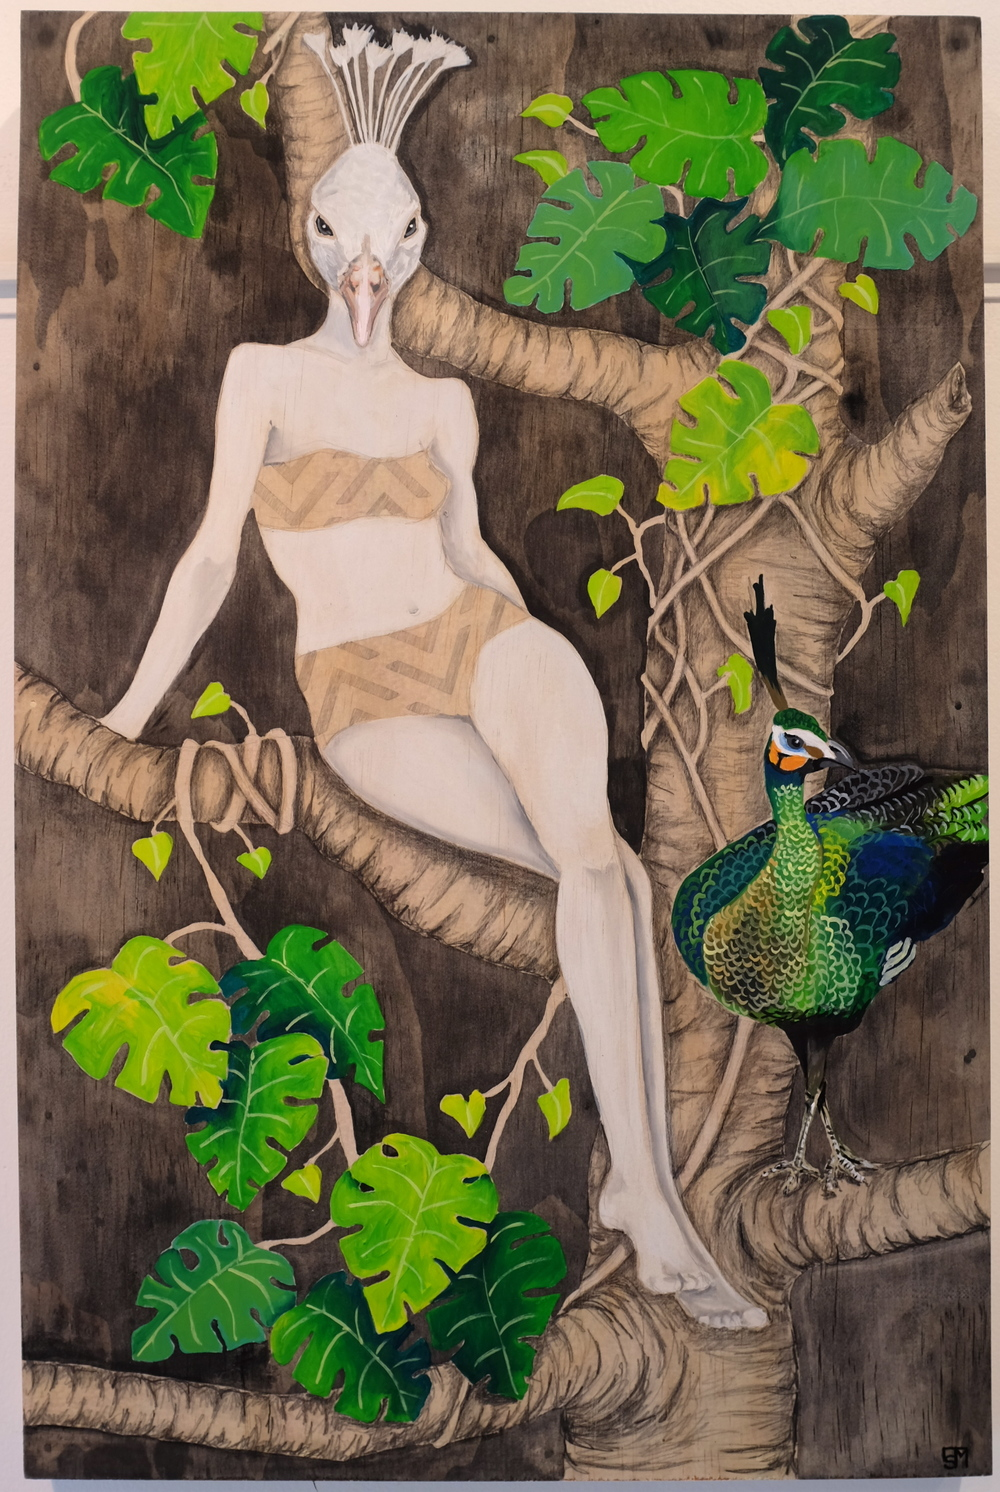 Steamy Nights  From the Glamour Bird Series.  Acrylic and Graphite on Plywood, 610mm x 400mm.